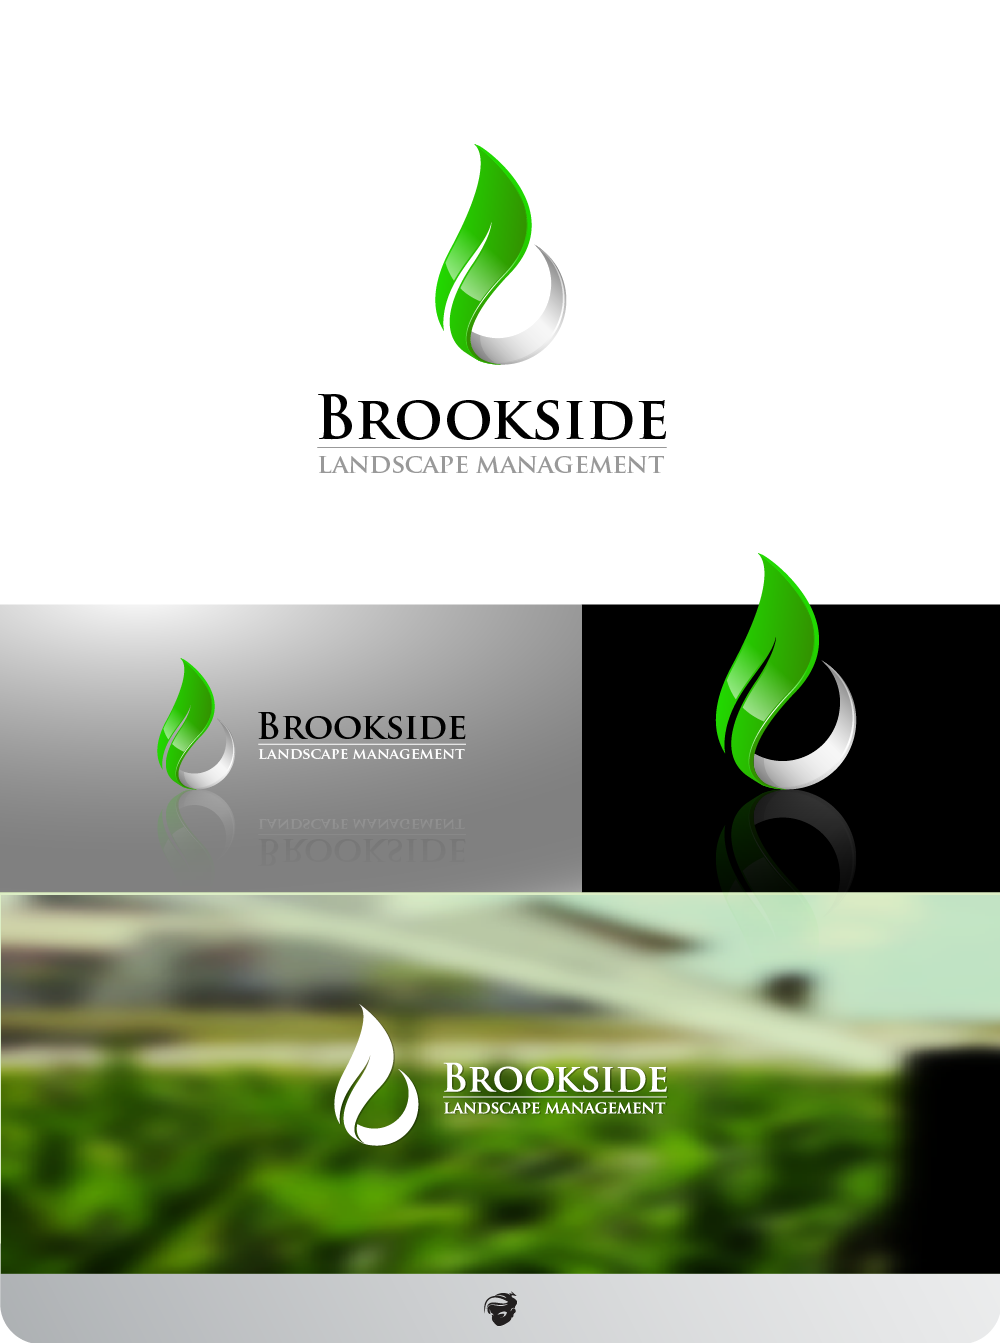 Logo Design by zesthar - Entry No. 173 in the Logo Design Contest New Logo Design for Brookside Landscape Management.